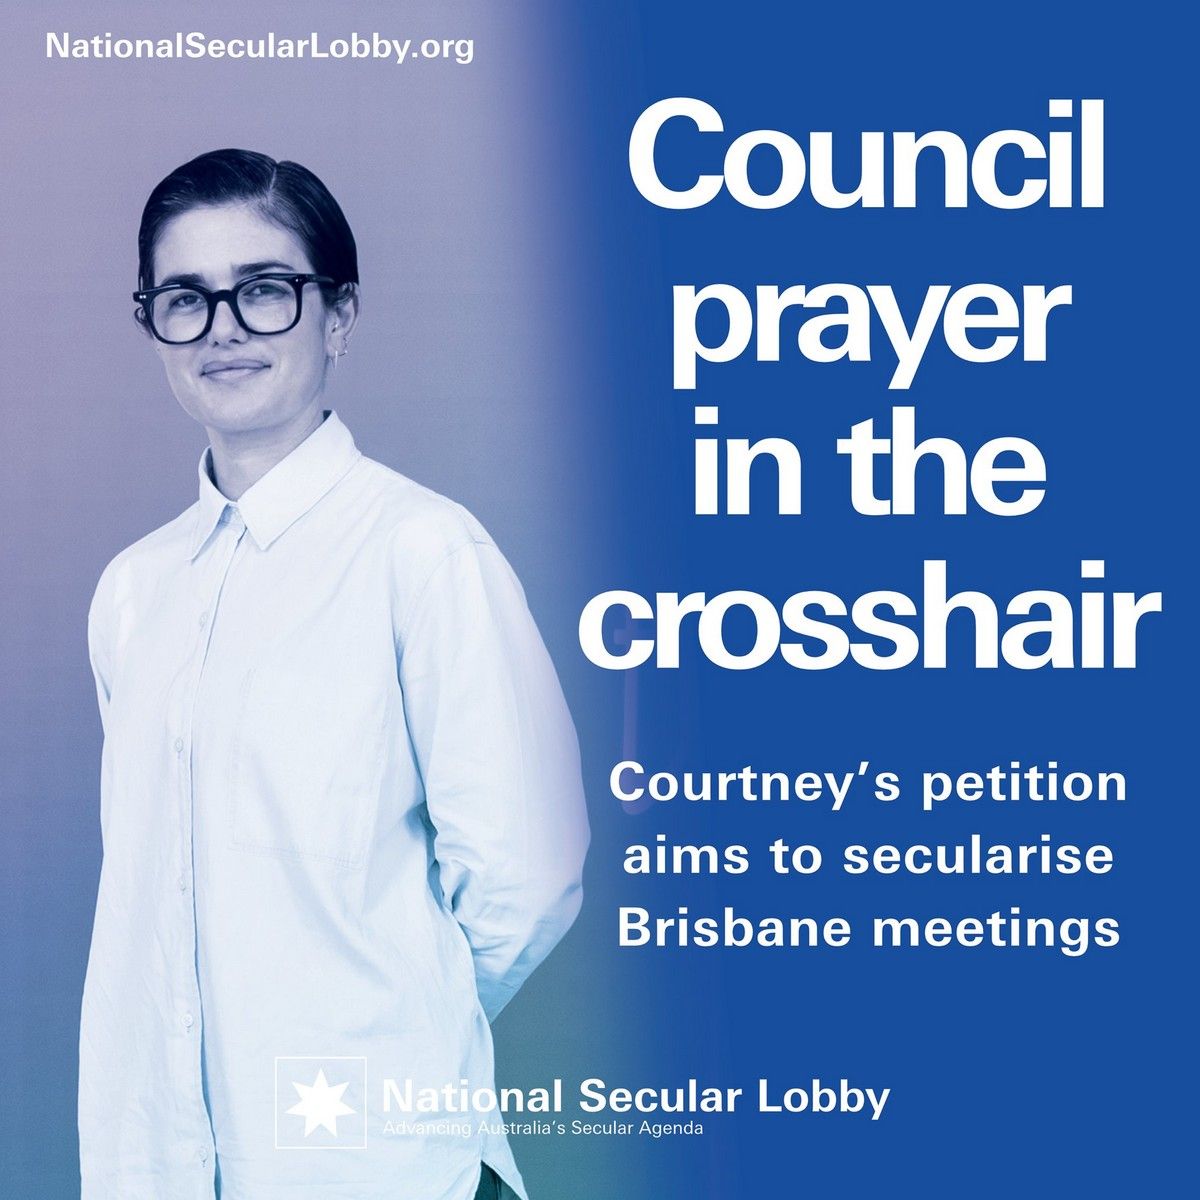 brisbane-city-council-prayer-petition-square